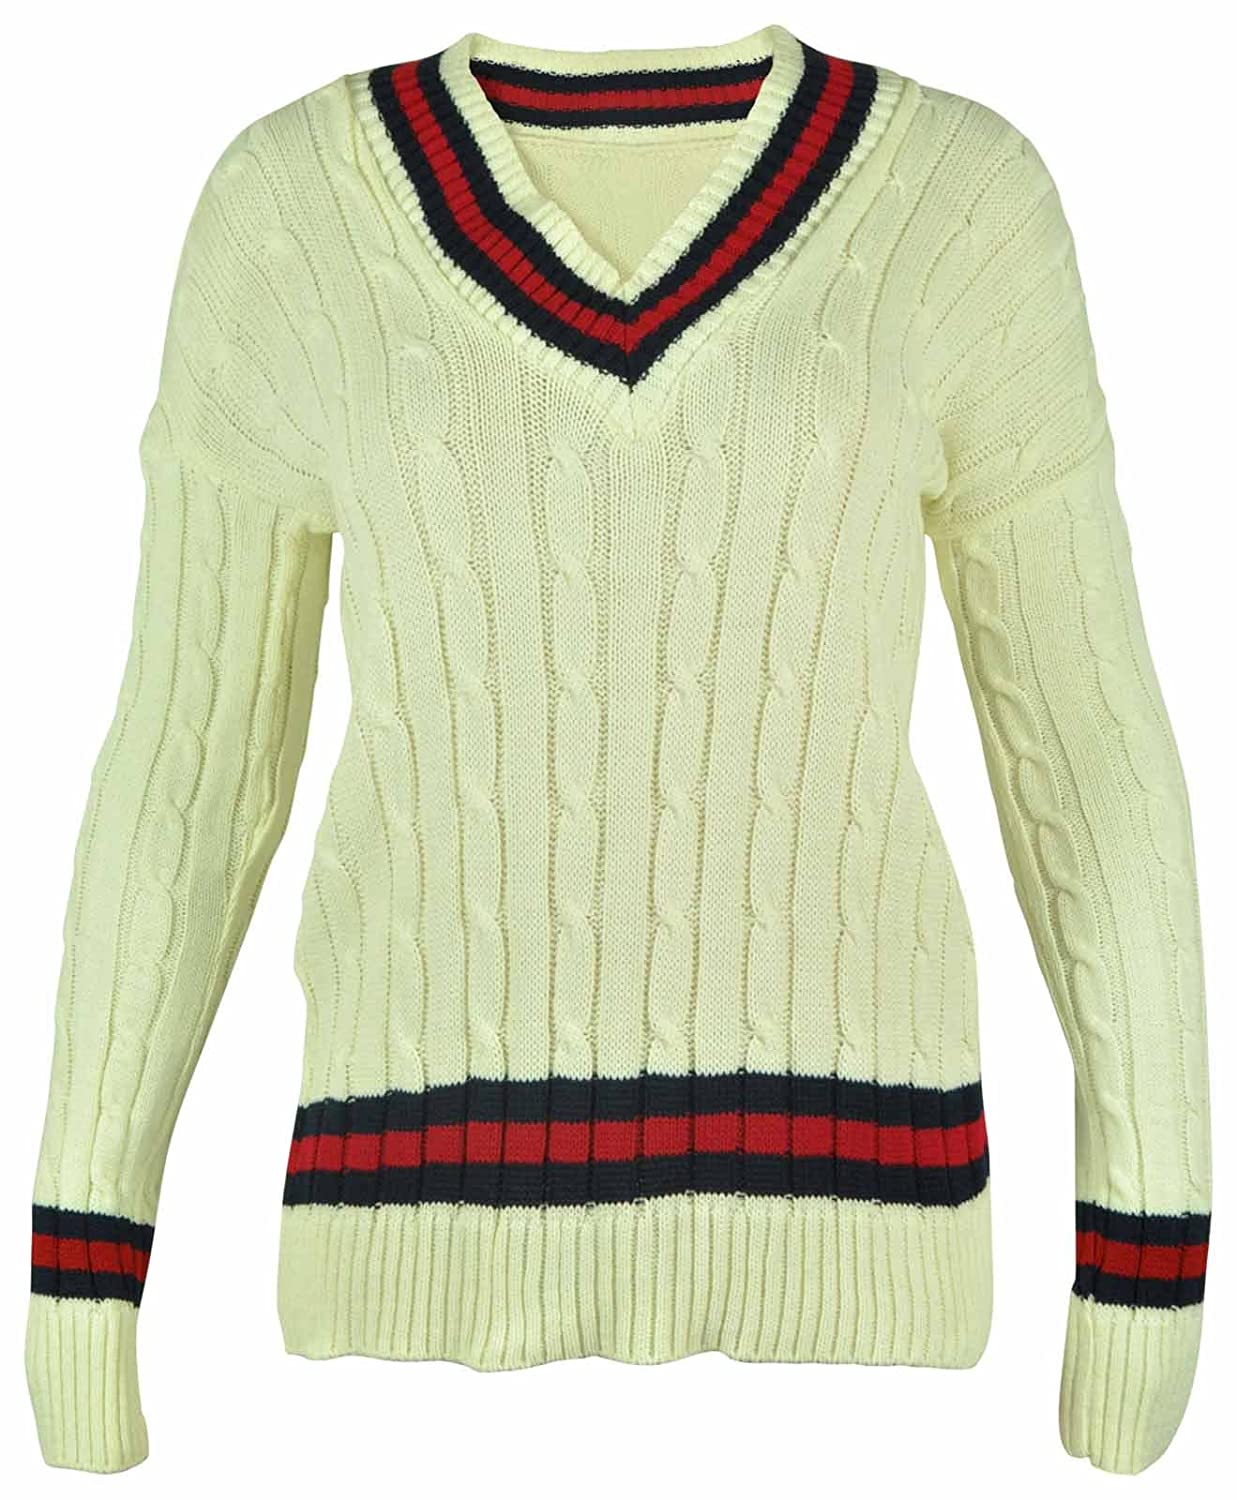 51e2d580e New Ladies V Neck Cable Knitted Cricket Jumper Womens Stretch Long ...